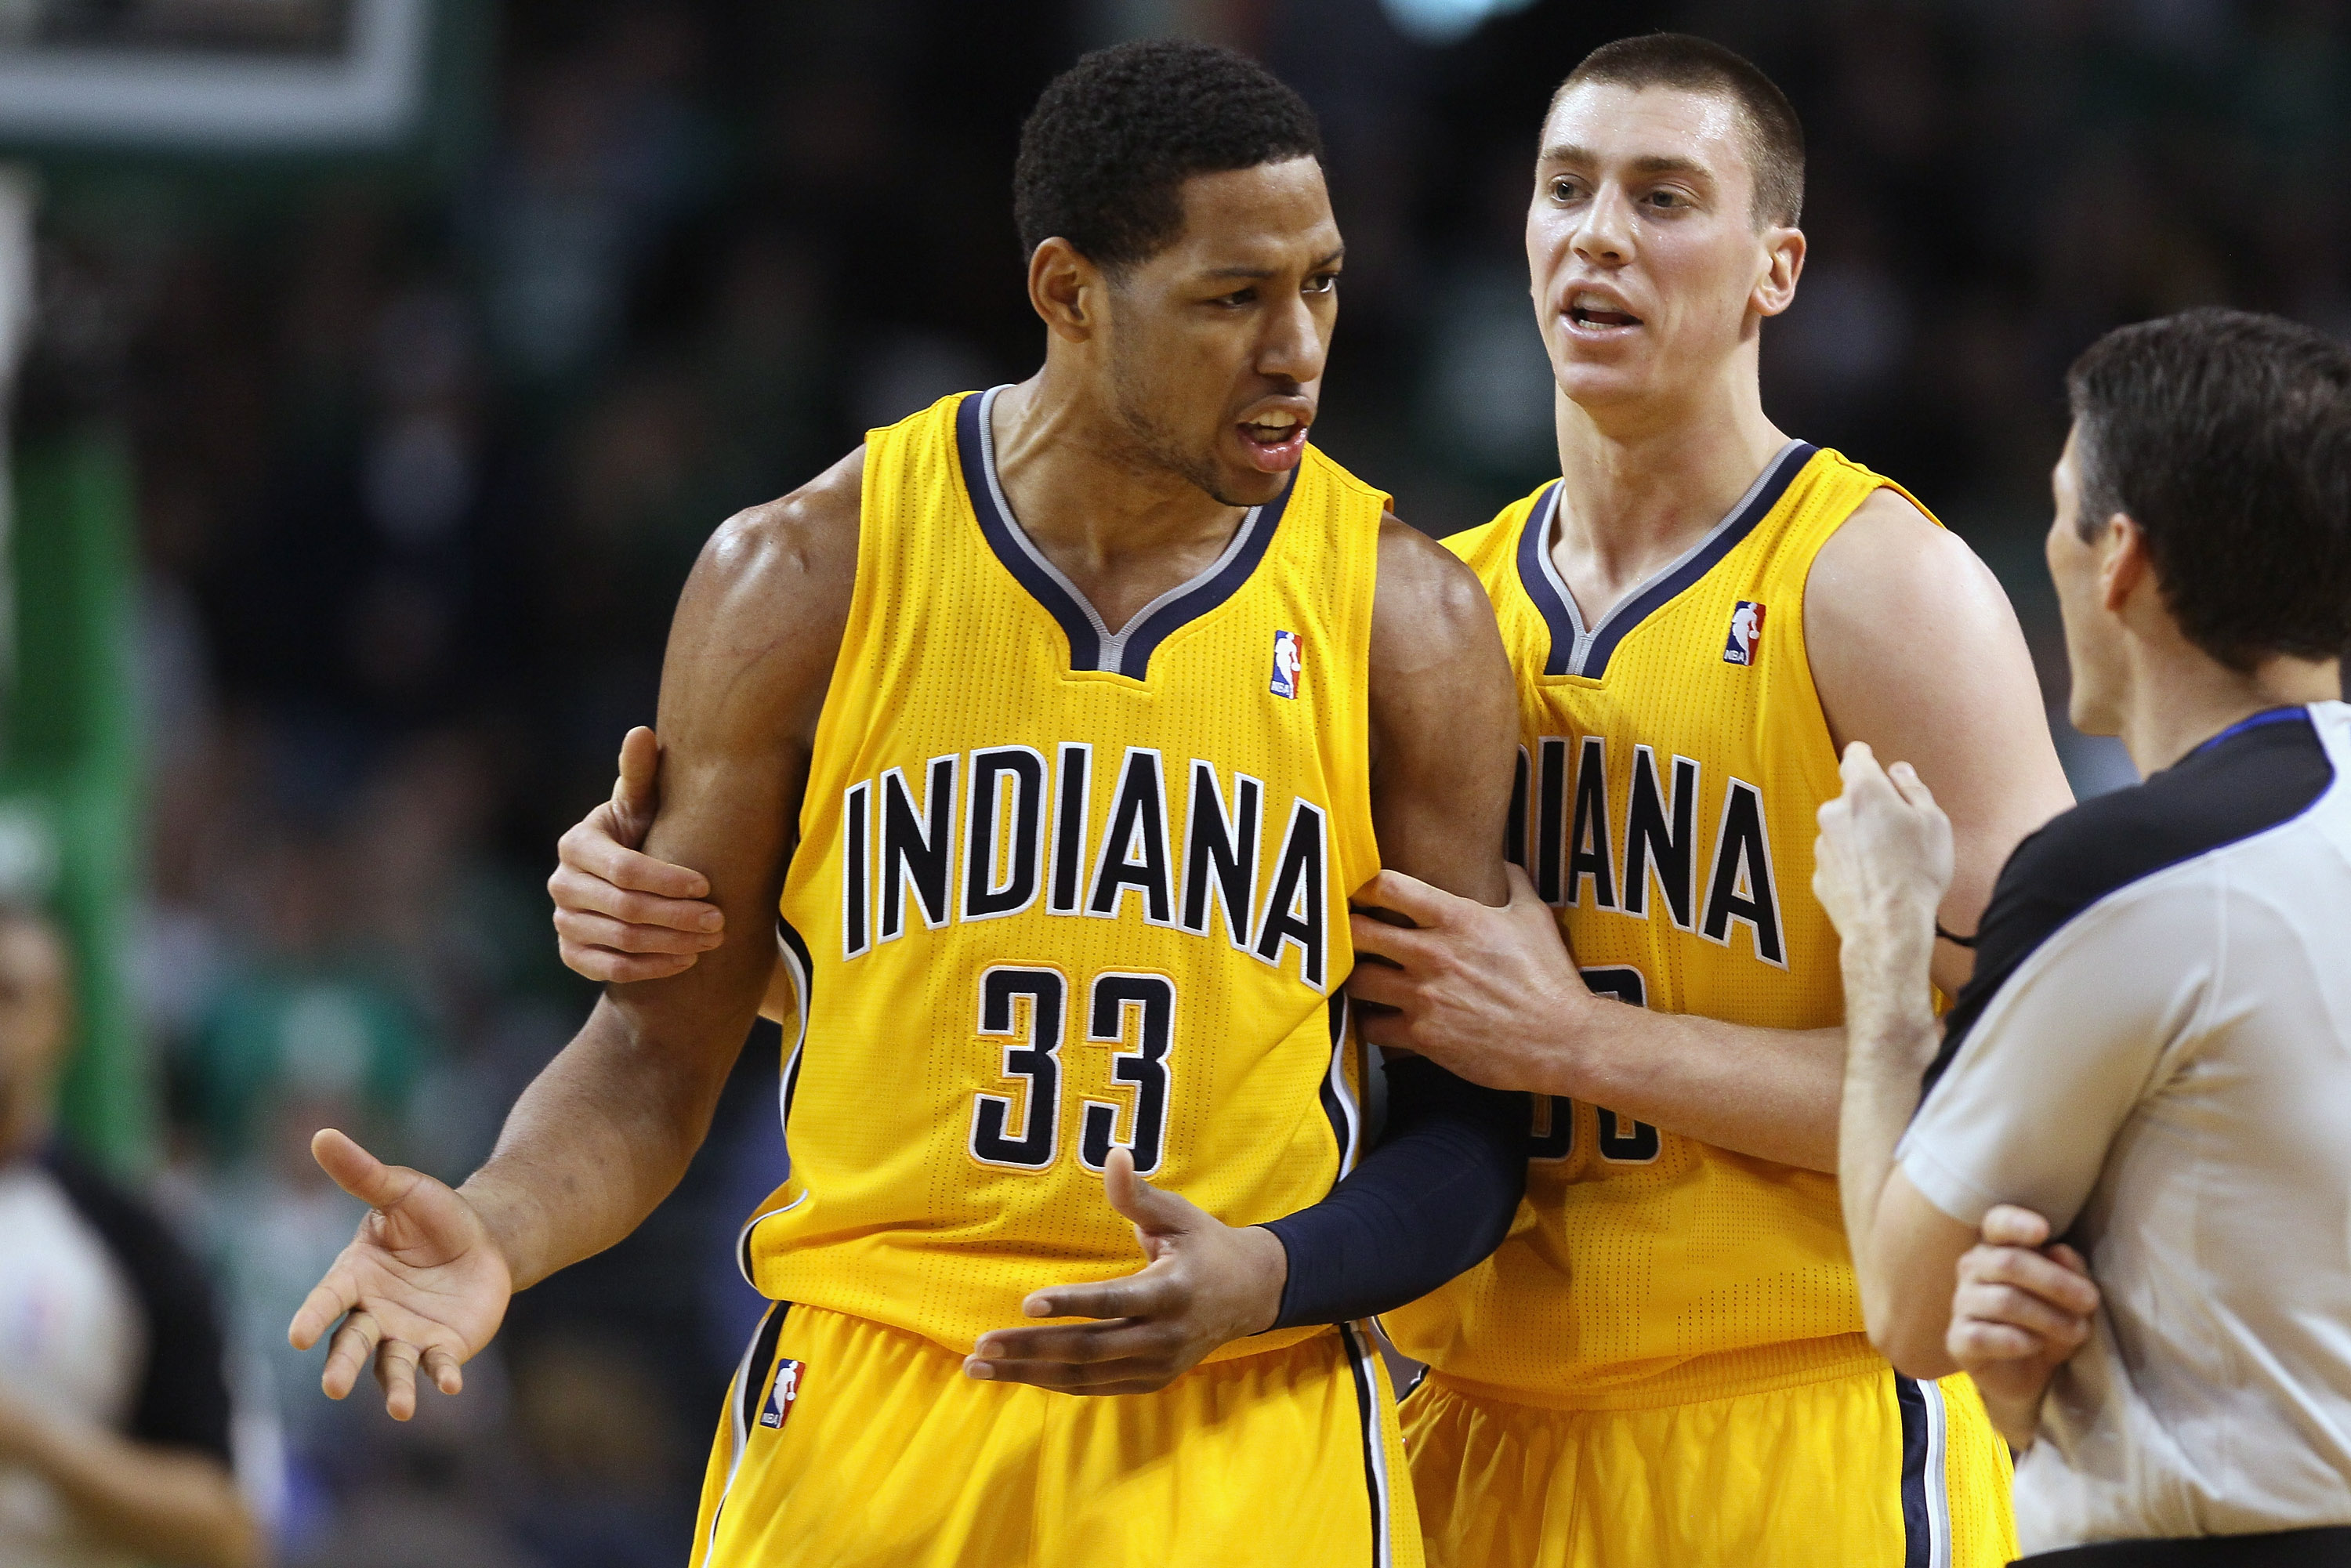 BOSTON, MA - MARCH 16:  Danny Granger #33 is pulled away from the referee by teamamte Tyler Hansbrough #50 of the Indiana Pacers on March 16, 2011 at the TD Garden in Boston, Massachusetts. Granger was called for a techical foul. The Celtics defeated the